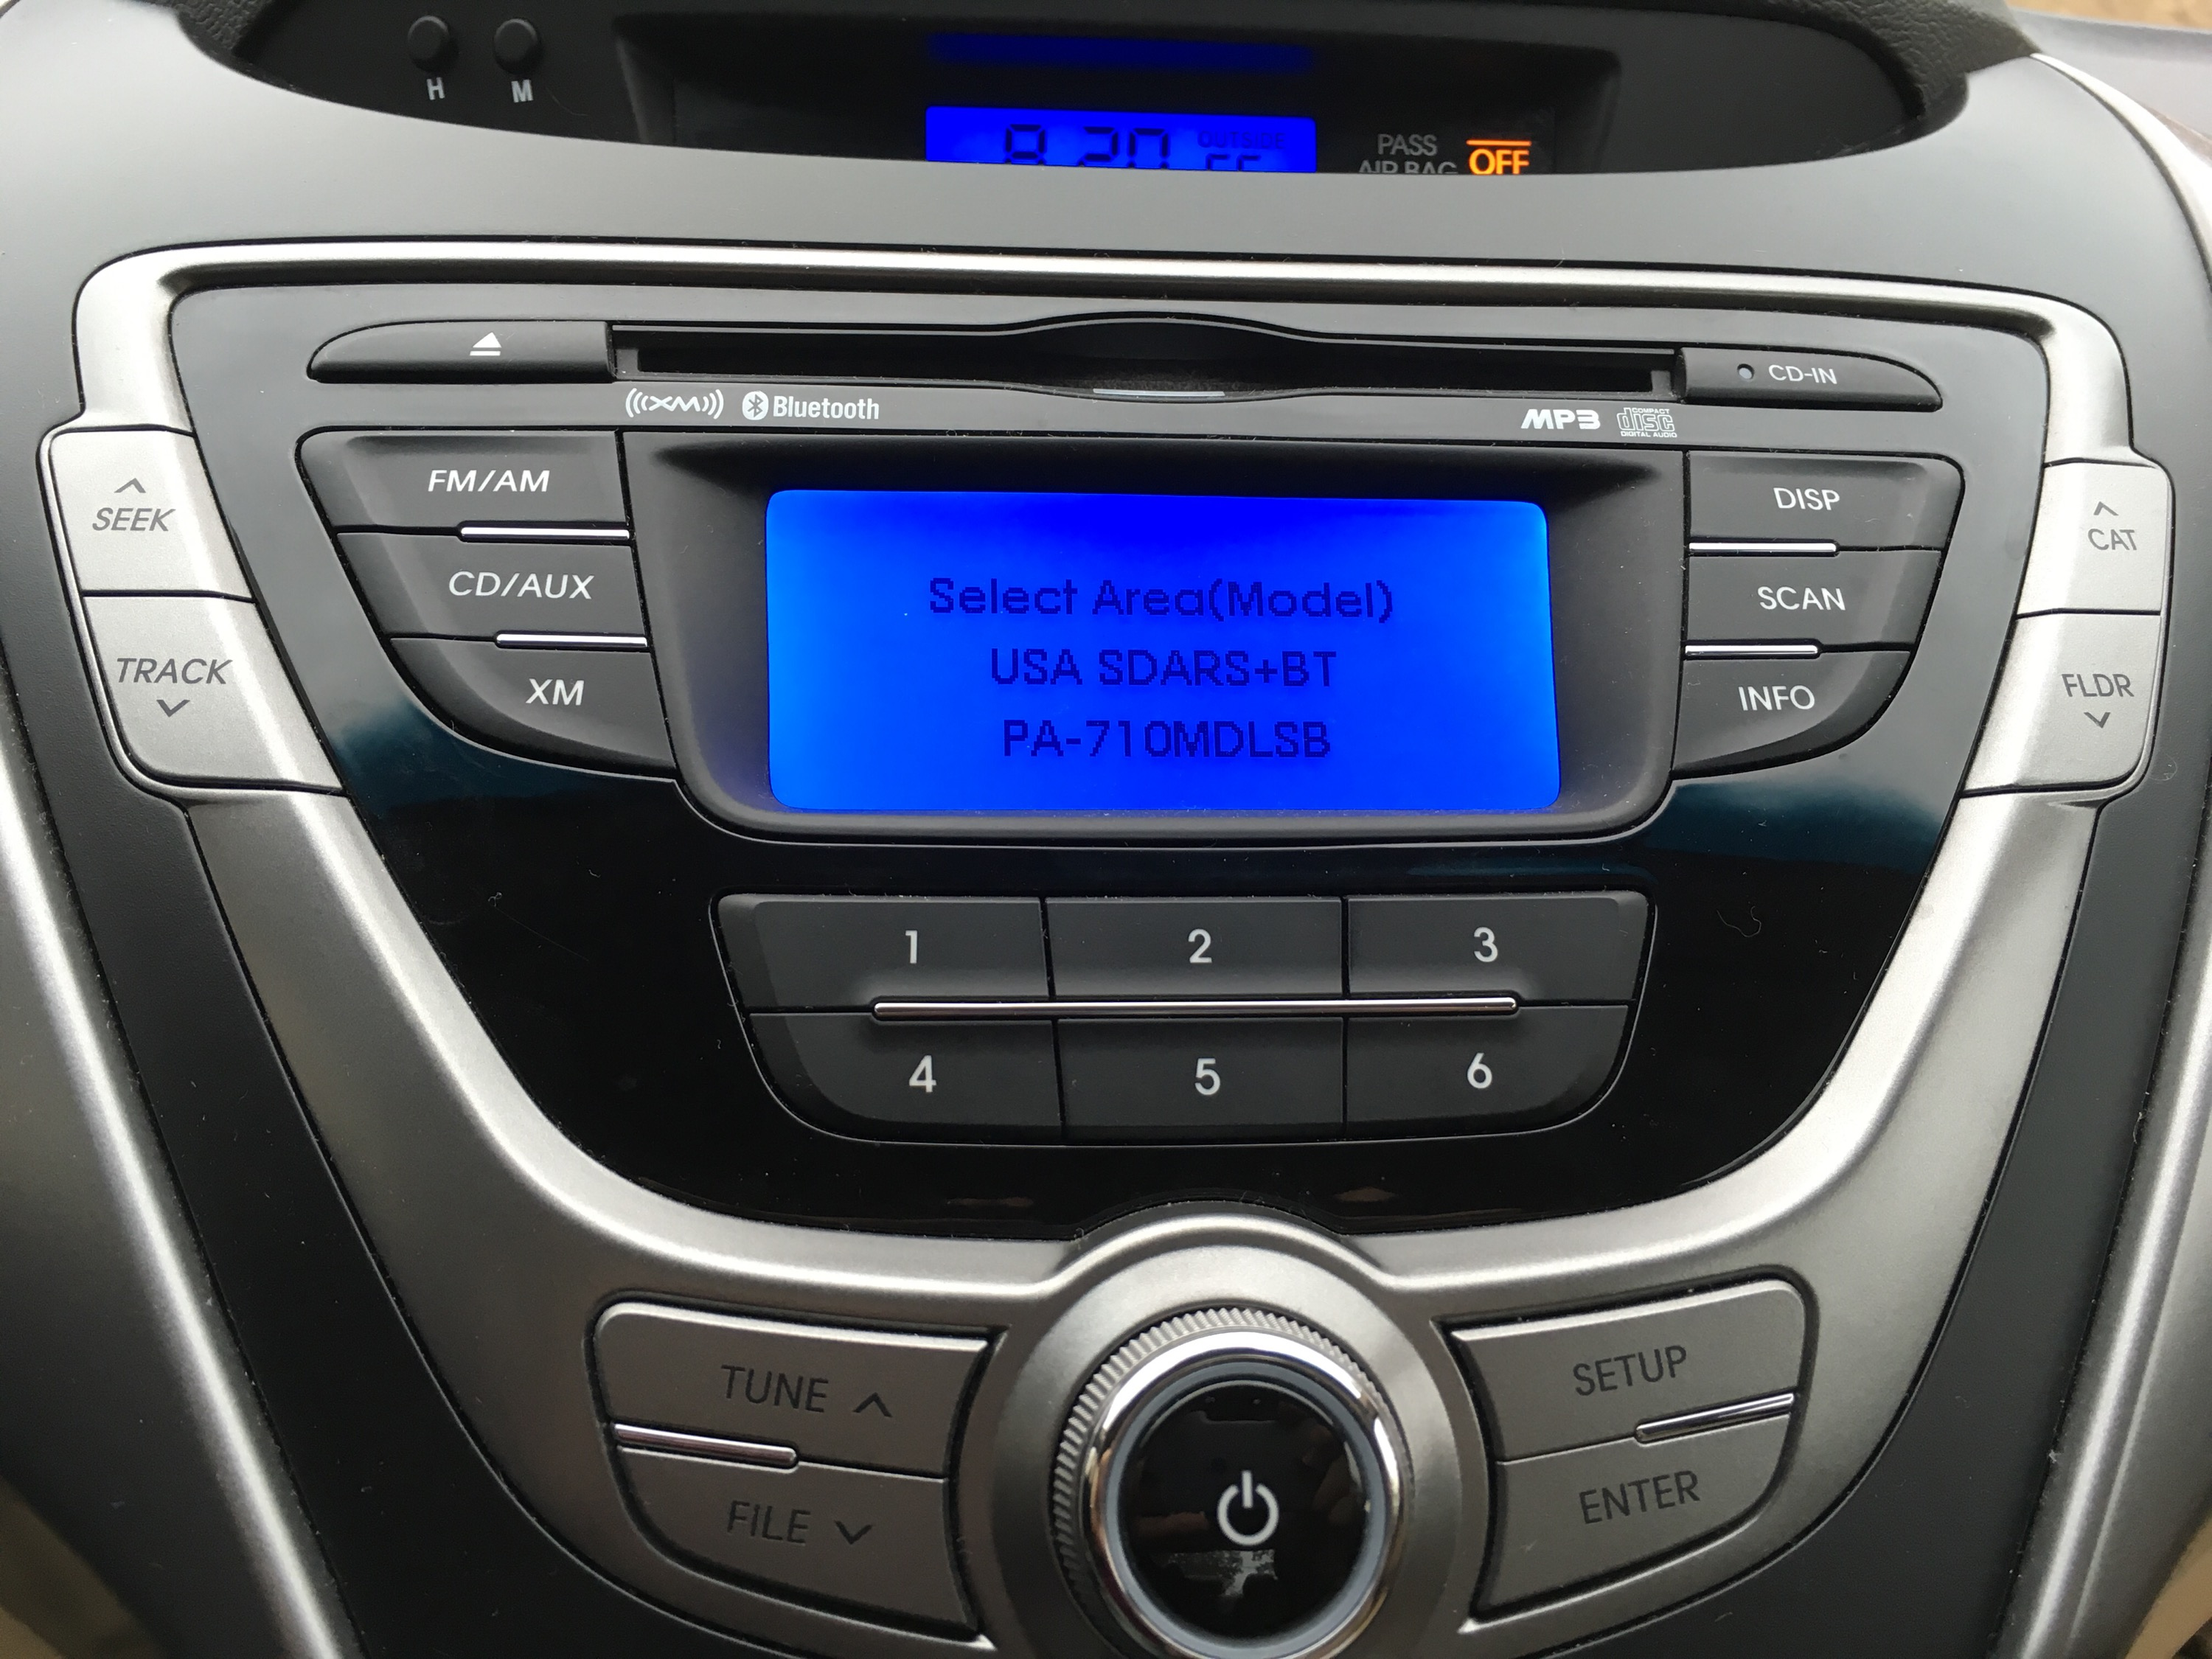 Disable XM Radio on Hyundai Elantra 2013 | Brian Prom Blog